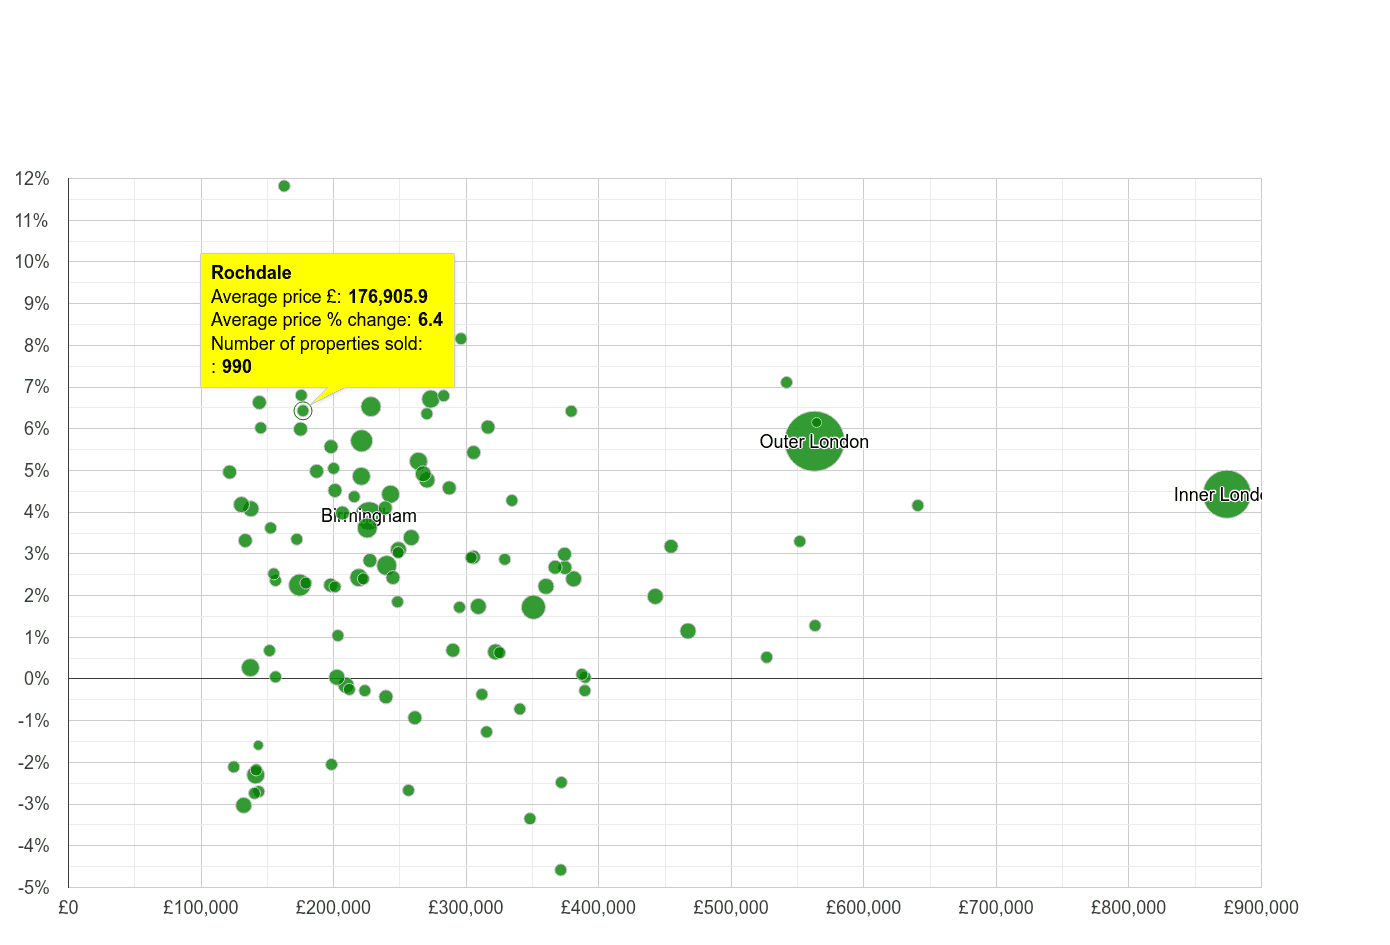 Rochdale house prices compared to other cities